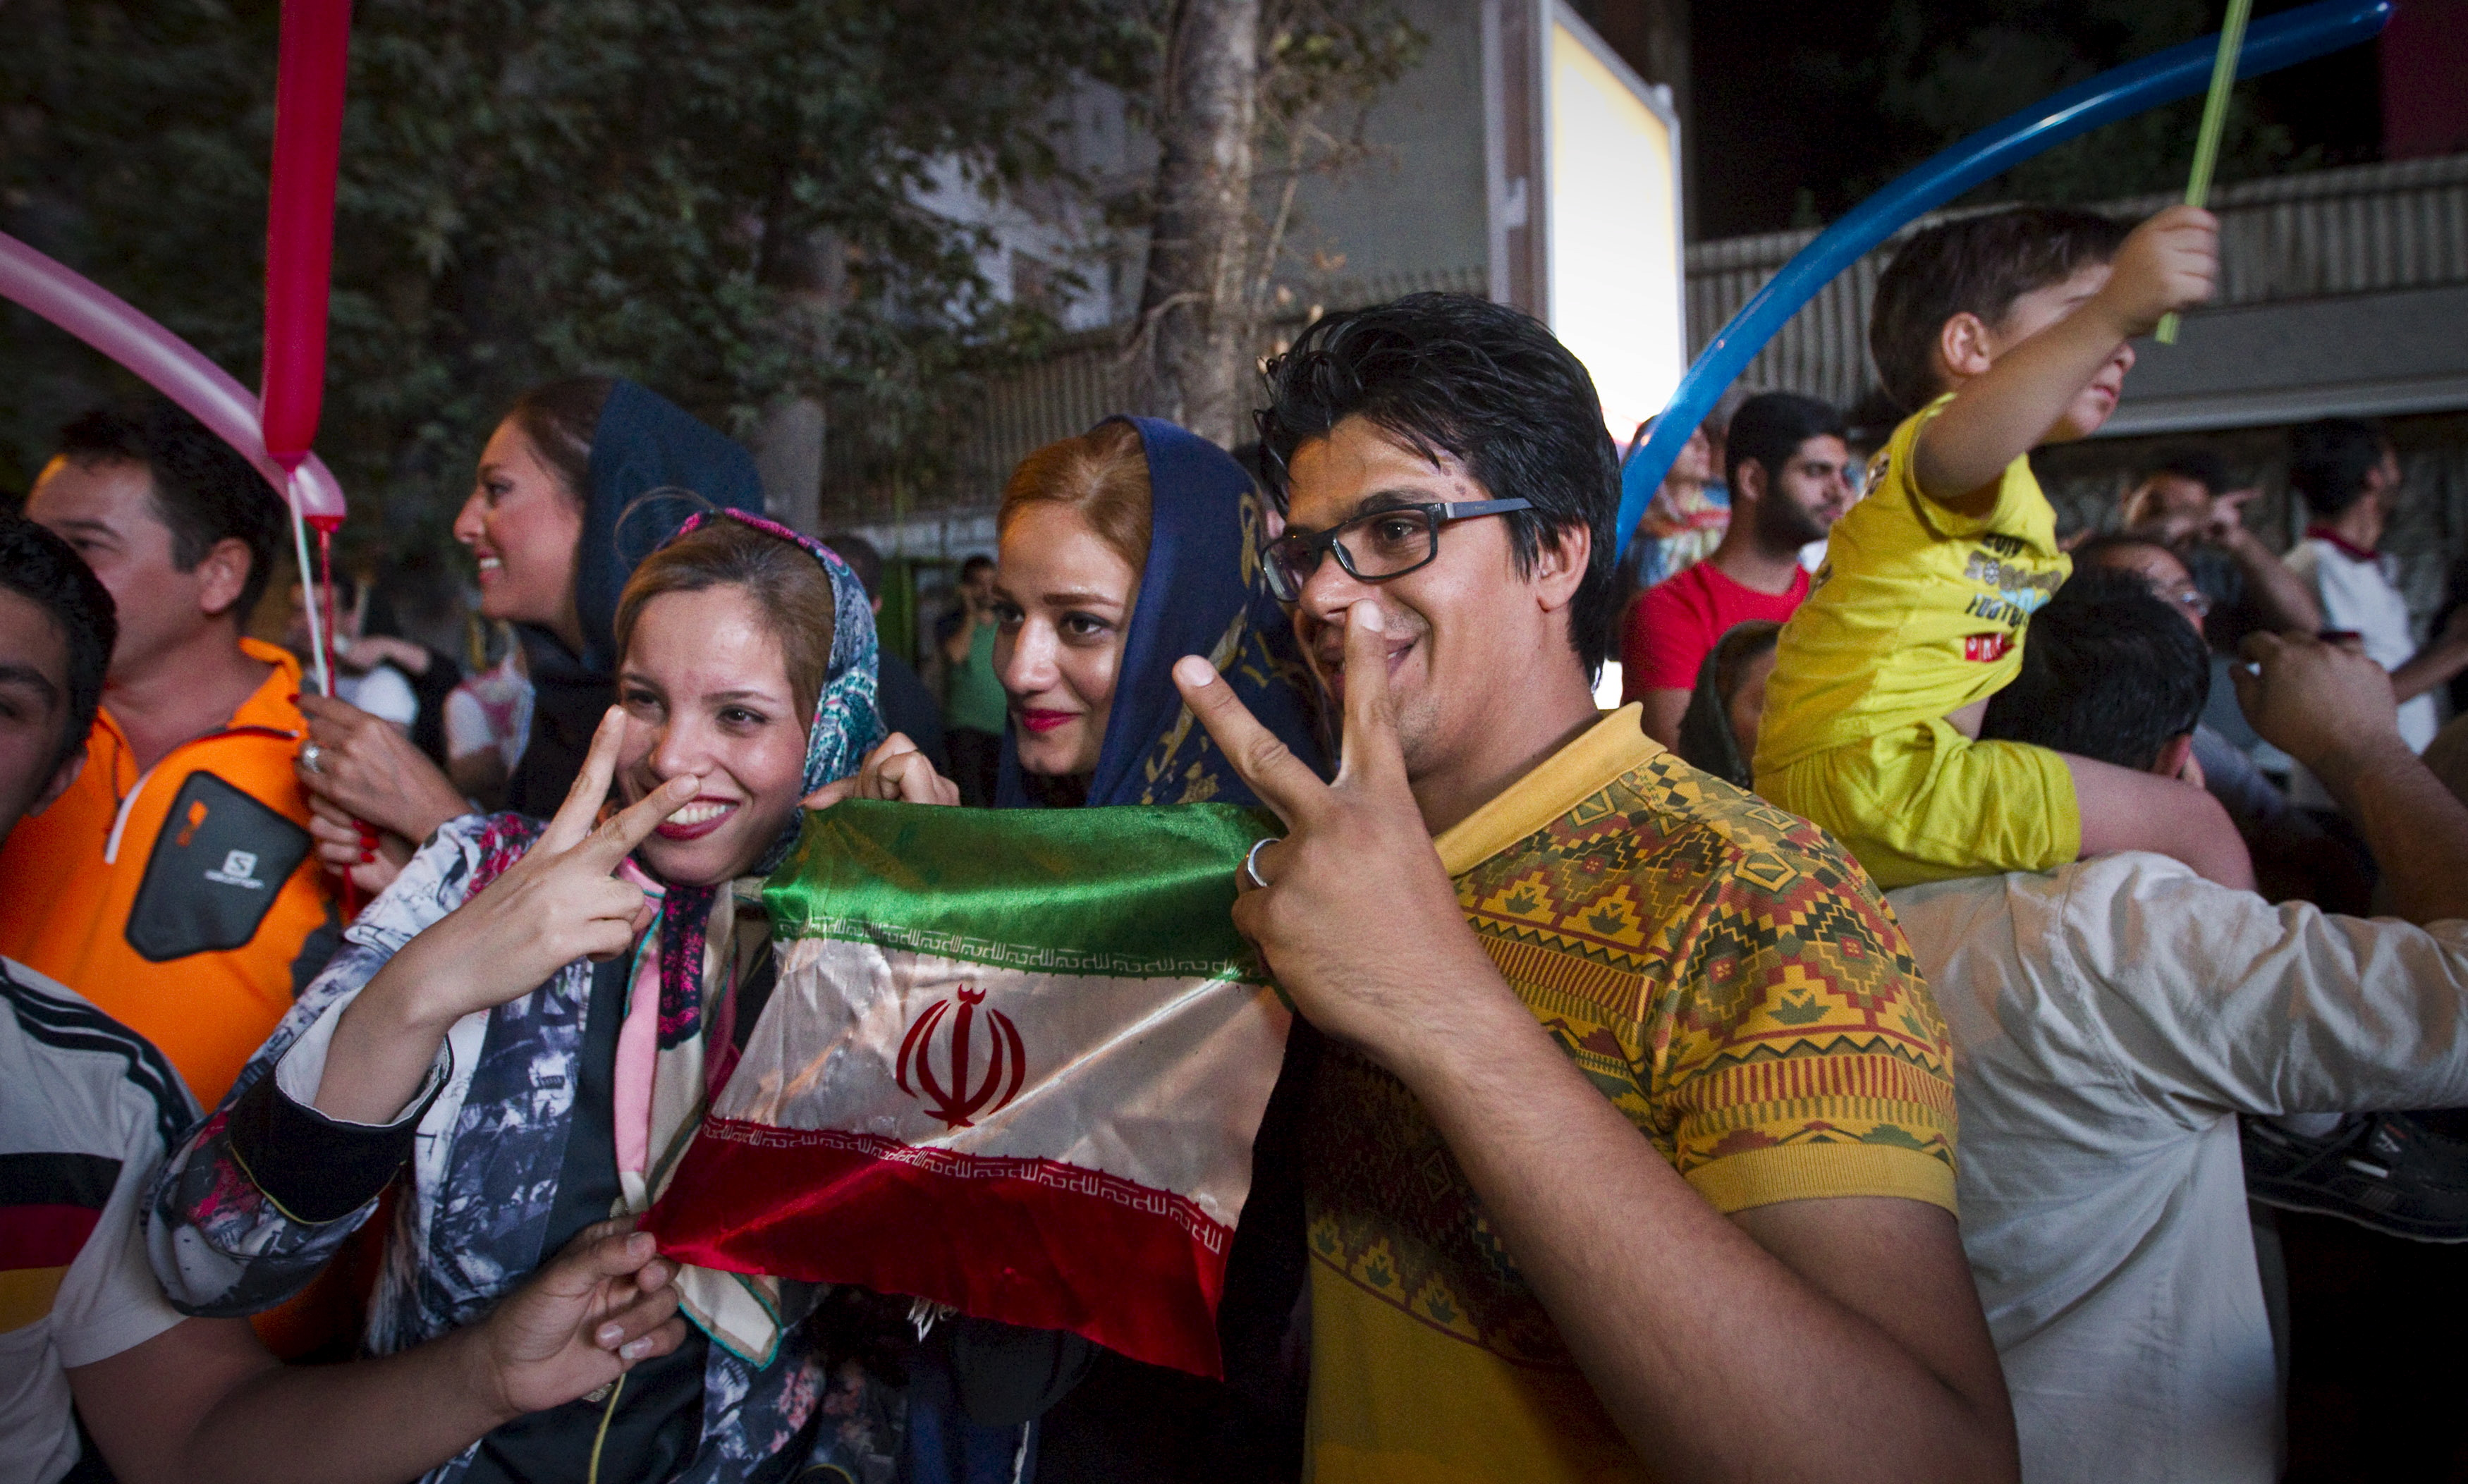 Iranians gesture as they celebrate in the streets of Tehran following the nuclear deal announced on July 14th. Iranian president Hassan Rouhani said a nuclear deal with major powers would open a new chapter of cooperation with the outside world after year